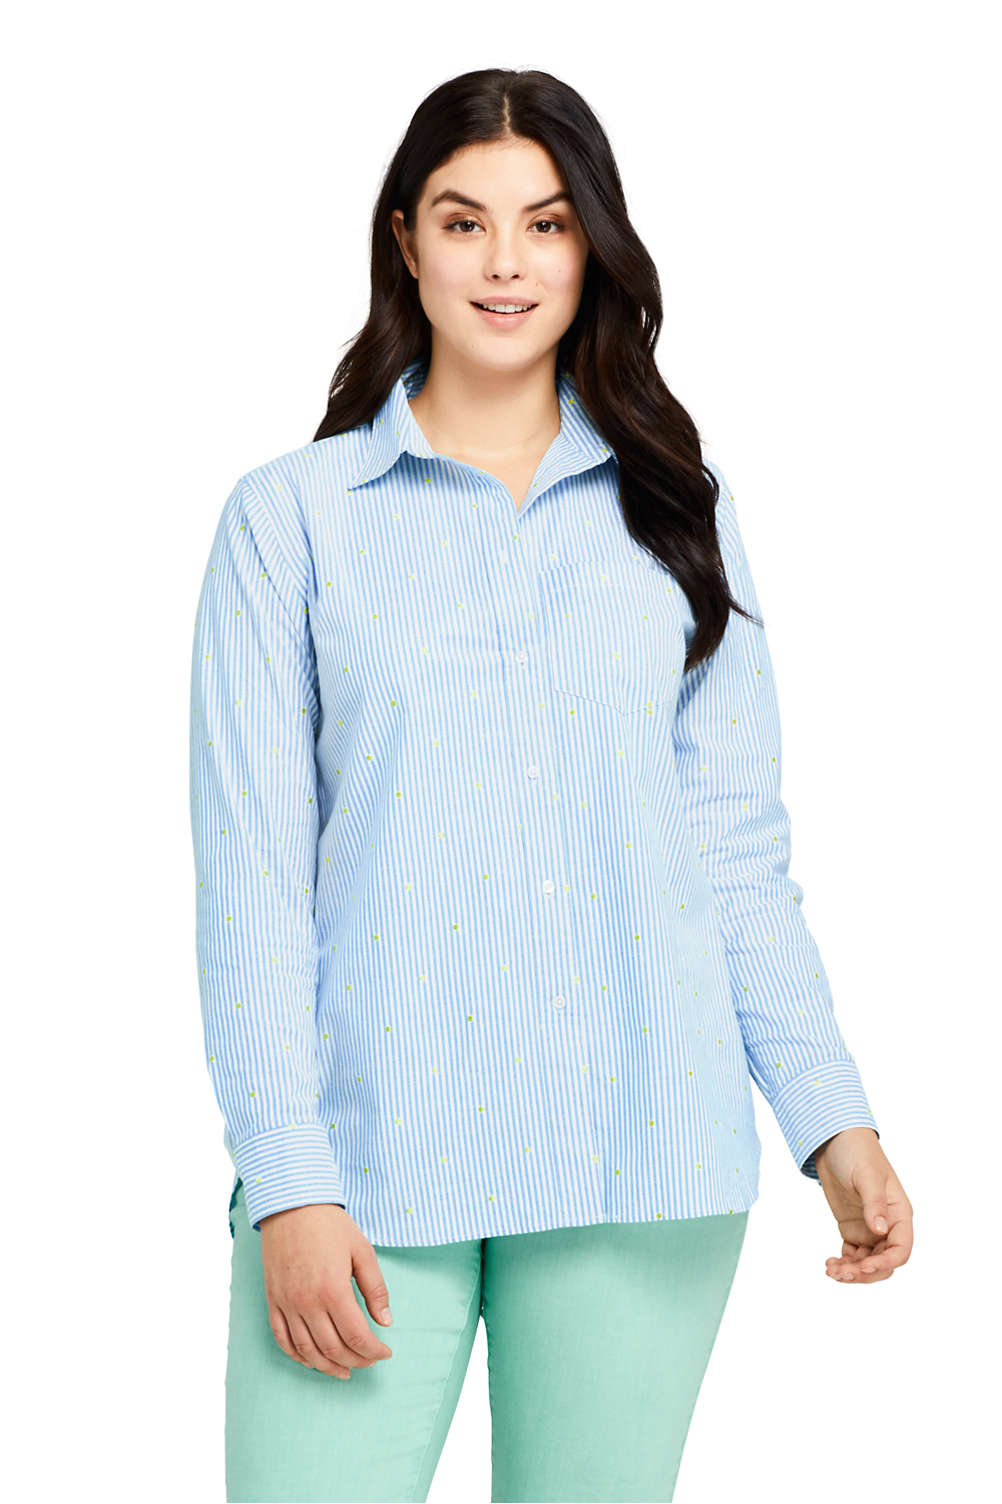 846898a752 Women S Plus Size Oxford Boyfriend Embroidery Shirt From Lands End. Tommy  Bahama Plus Size Boyfriend Shirt Cover Up White Swimwear